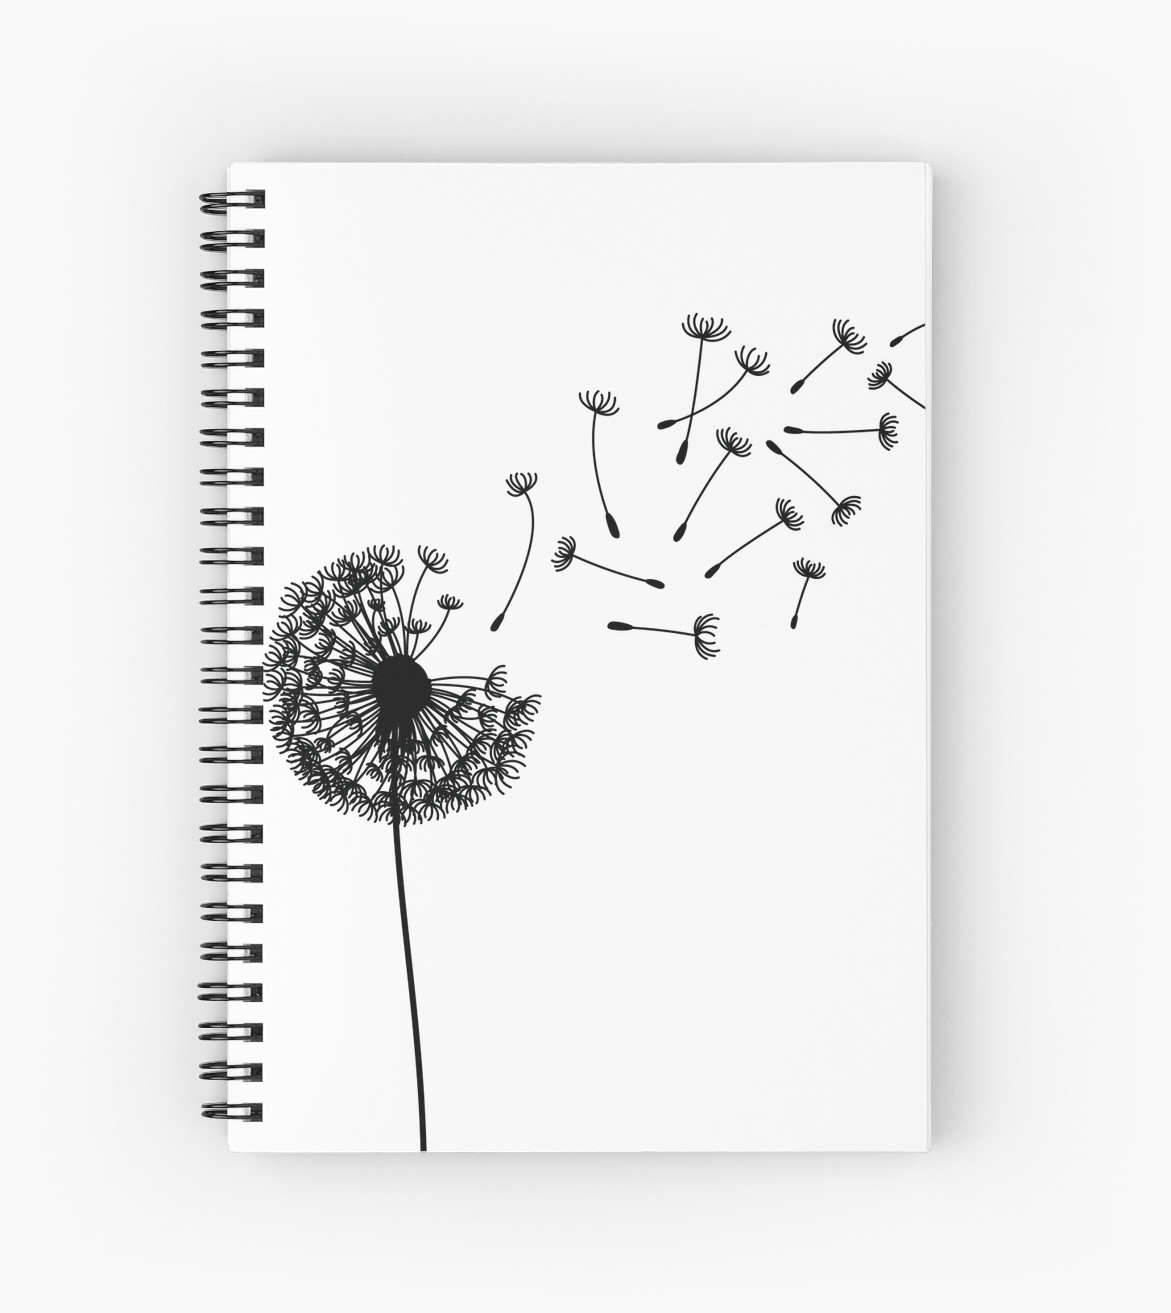 Make a Wish, Spiral Notebooks